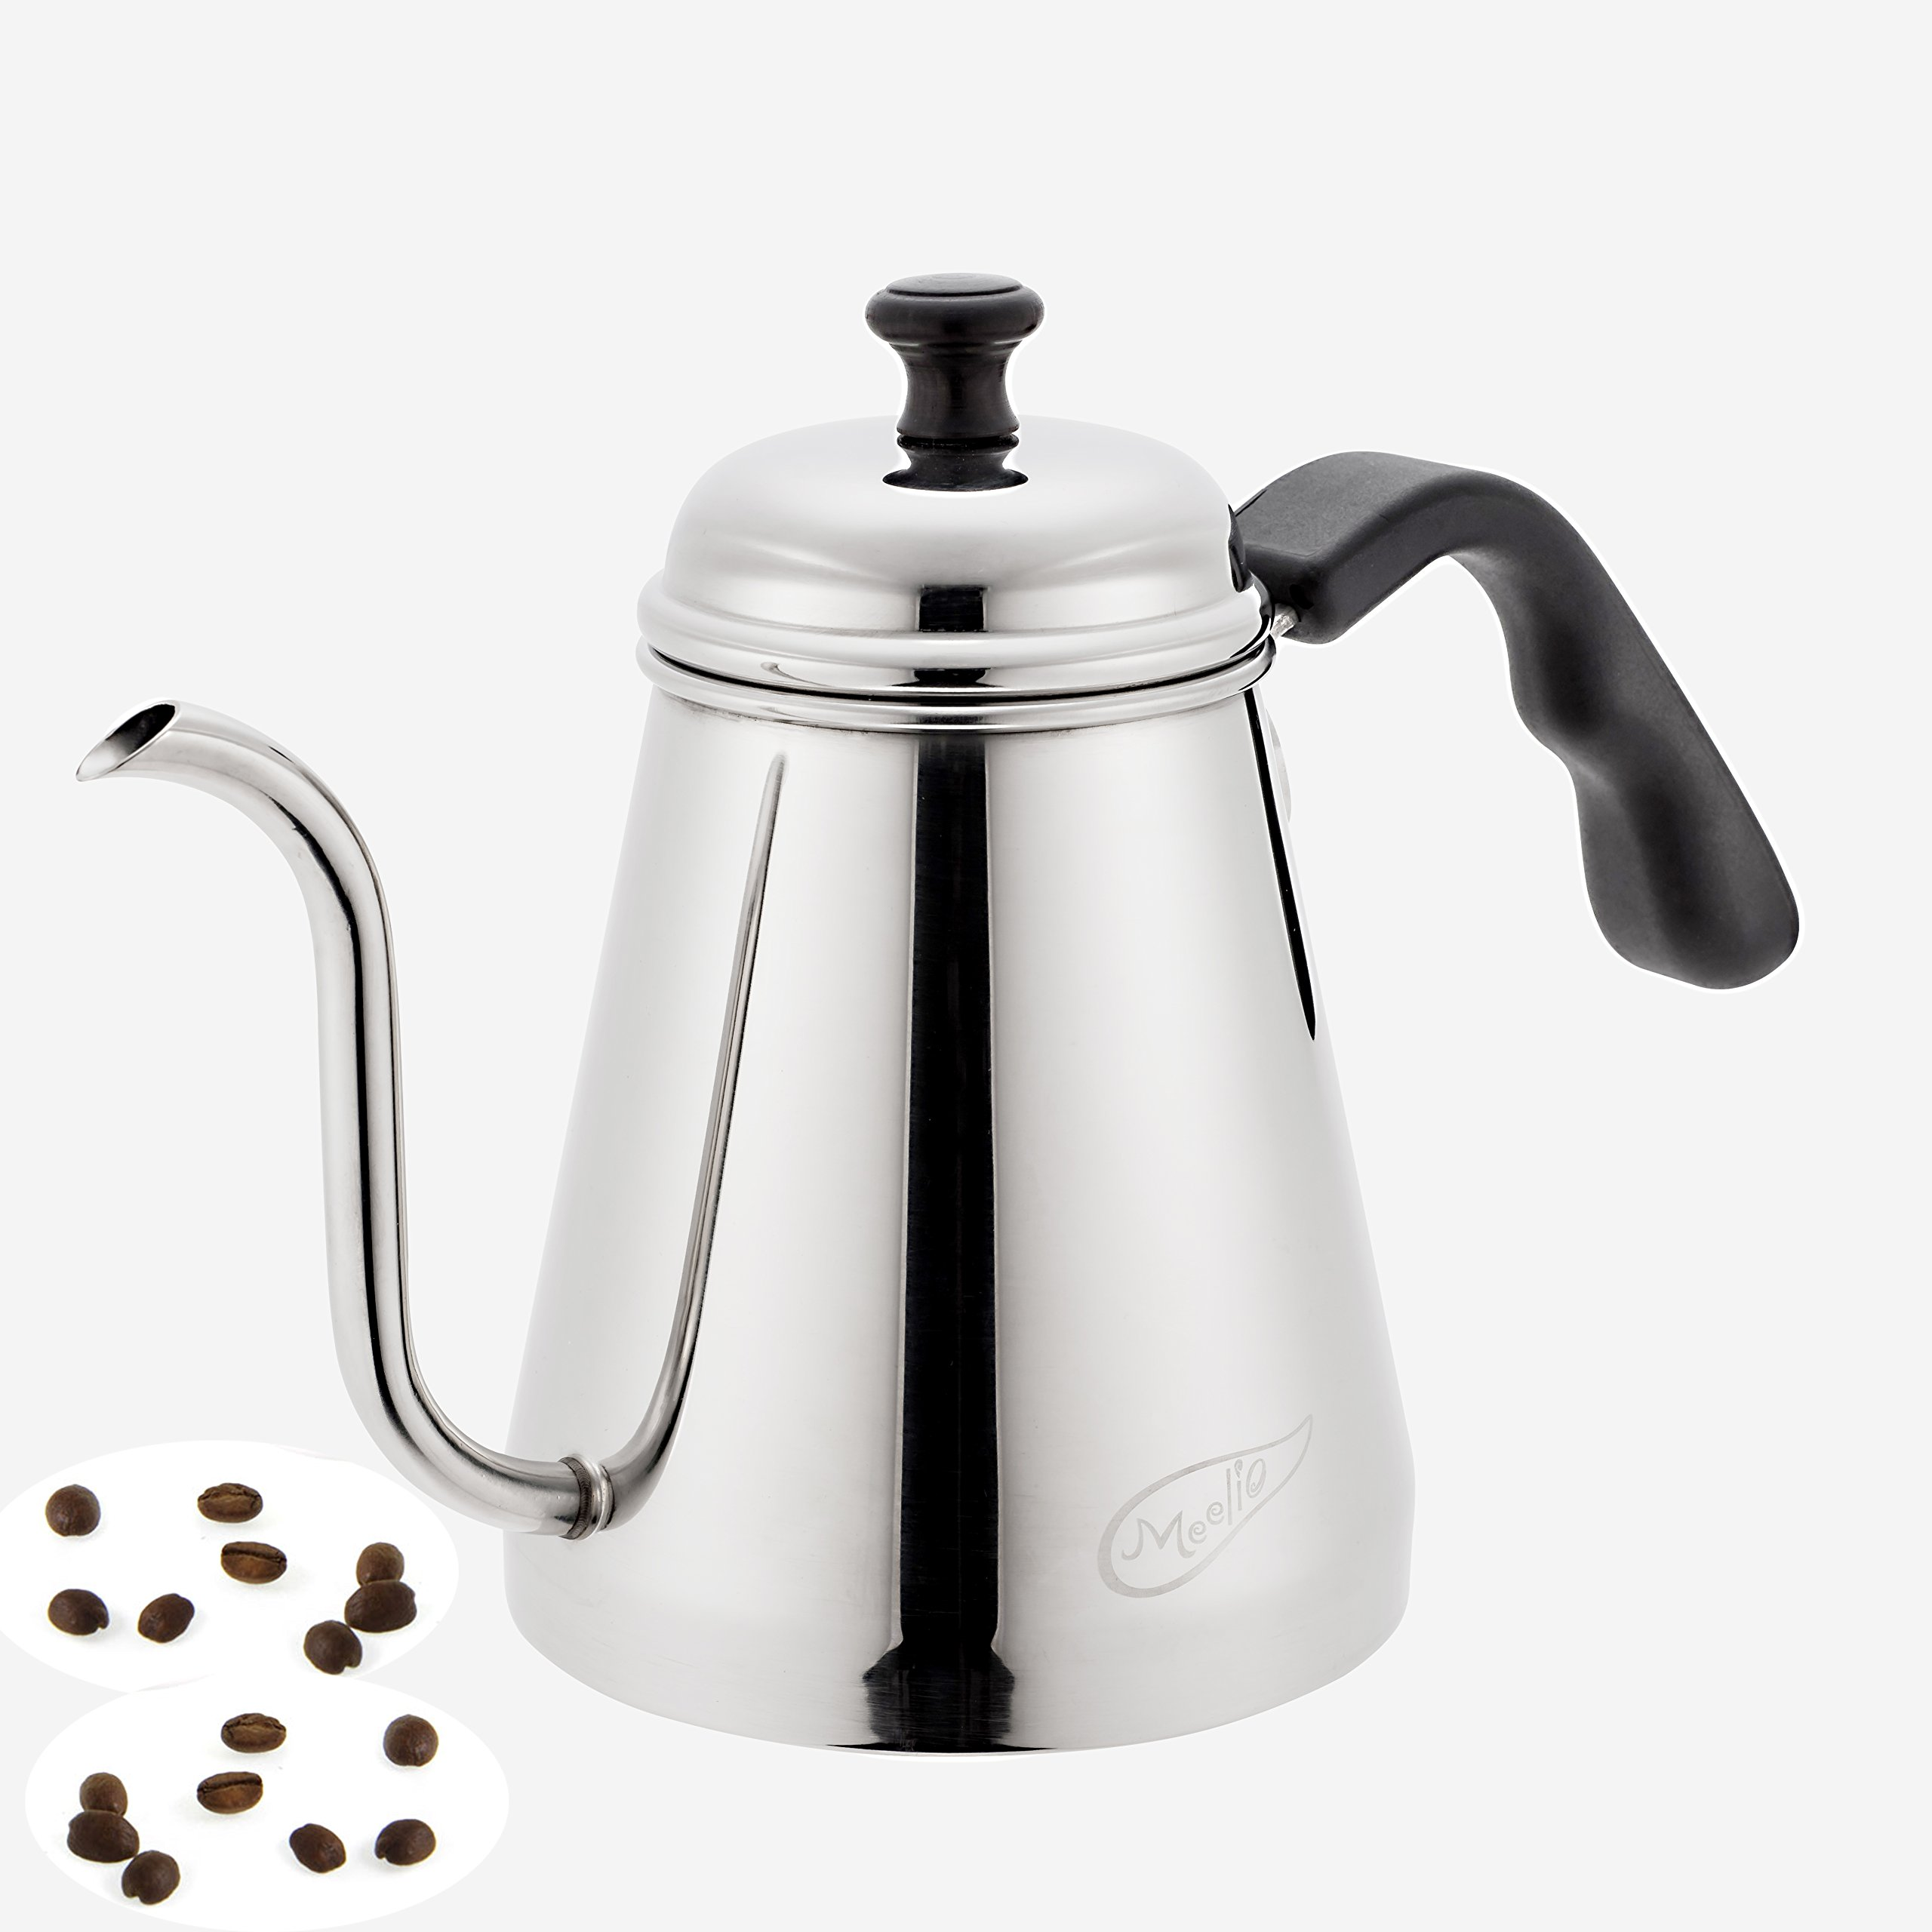 Meelio Pour Over Coffee Kettle,1 Liter Gooseneck Drip Kettle,Stainless Steel Tea Coffee Pot … (1.0L)